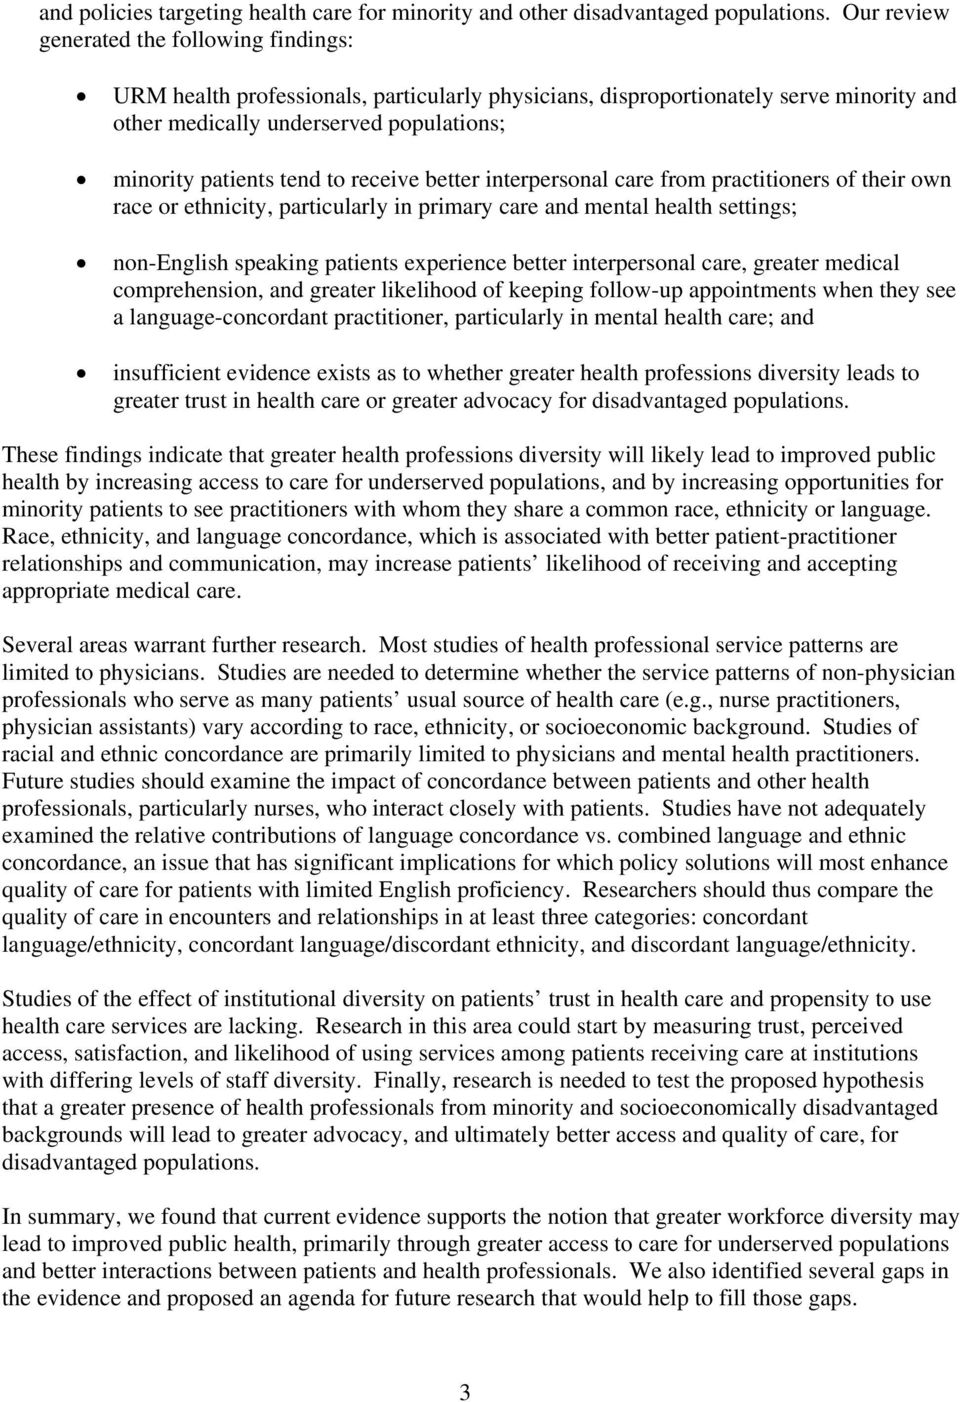 to receive better interpersonal care from practitioners of their own race or ethnicity, particularly in primary care and mental health settings; non-english speaking patients experience better